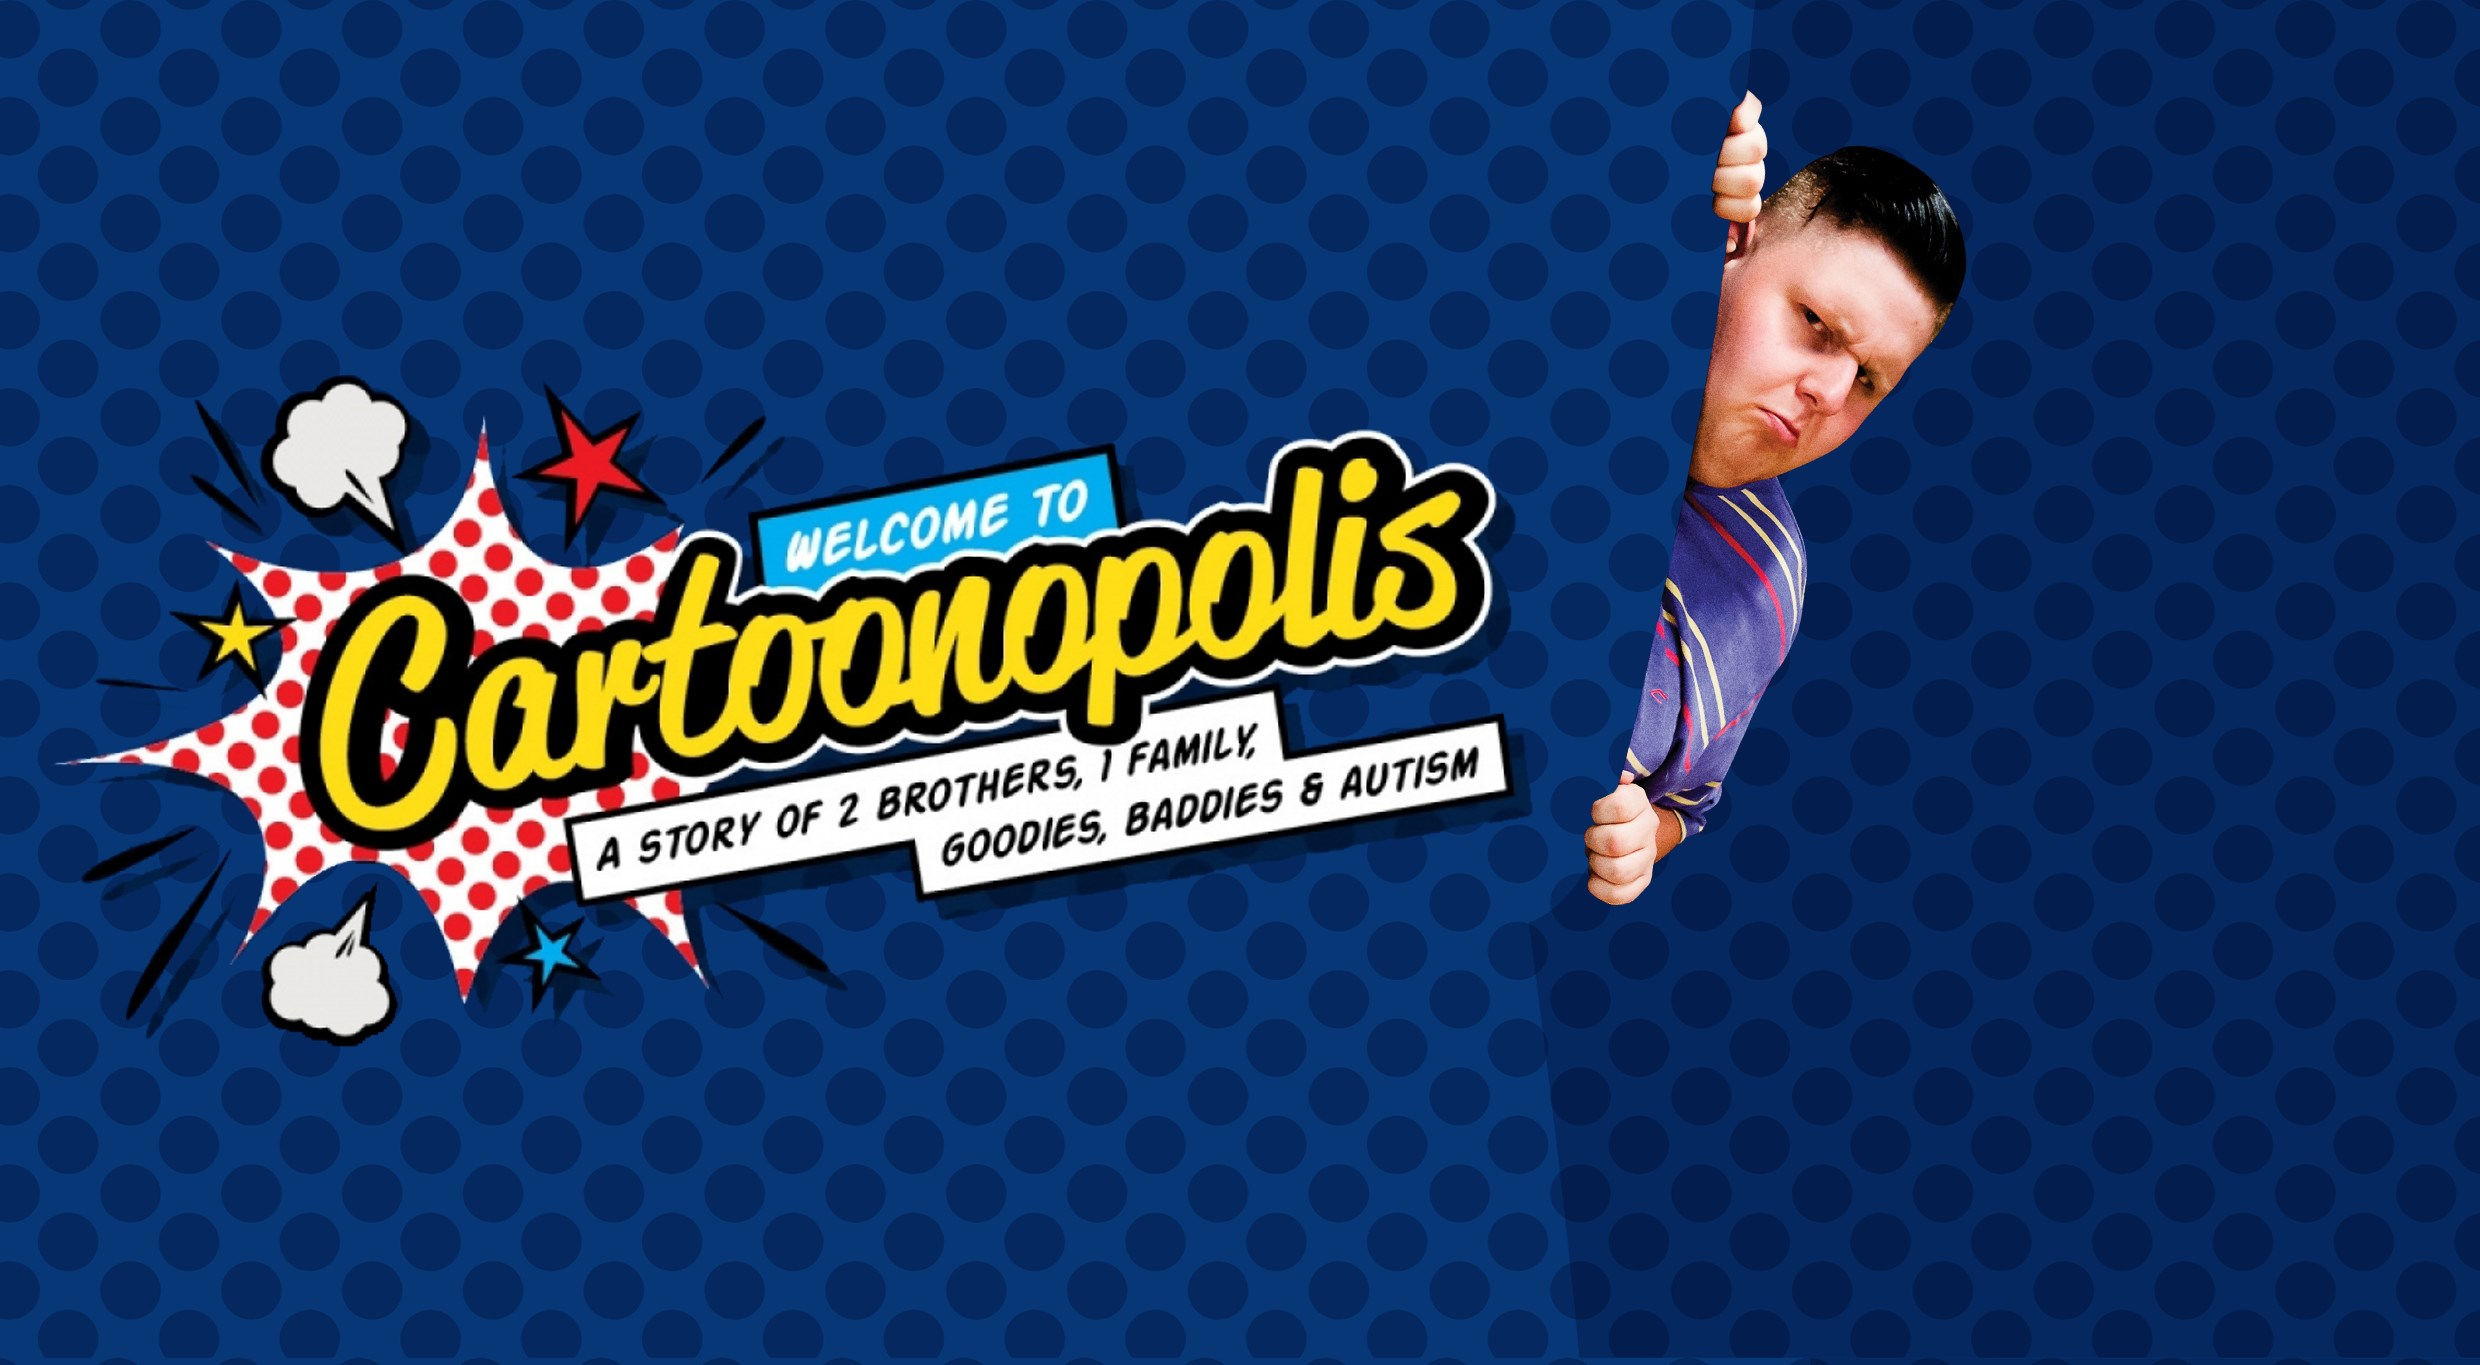 Cartoonopolis